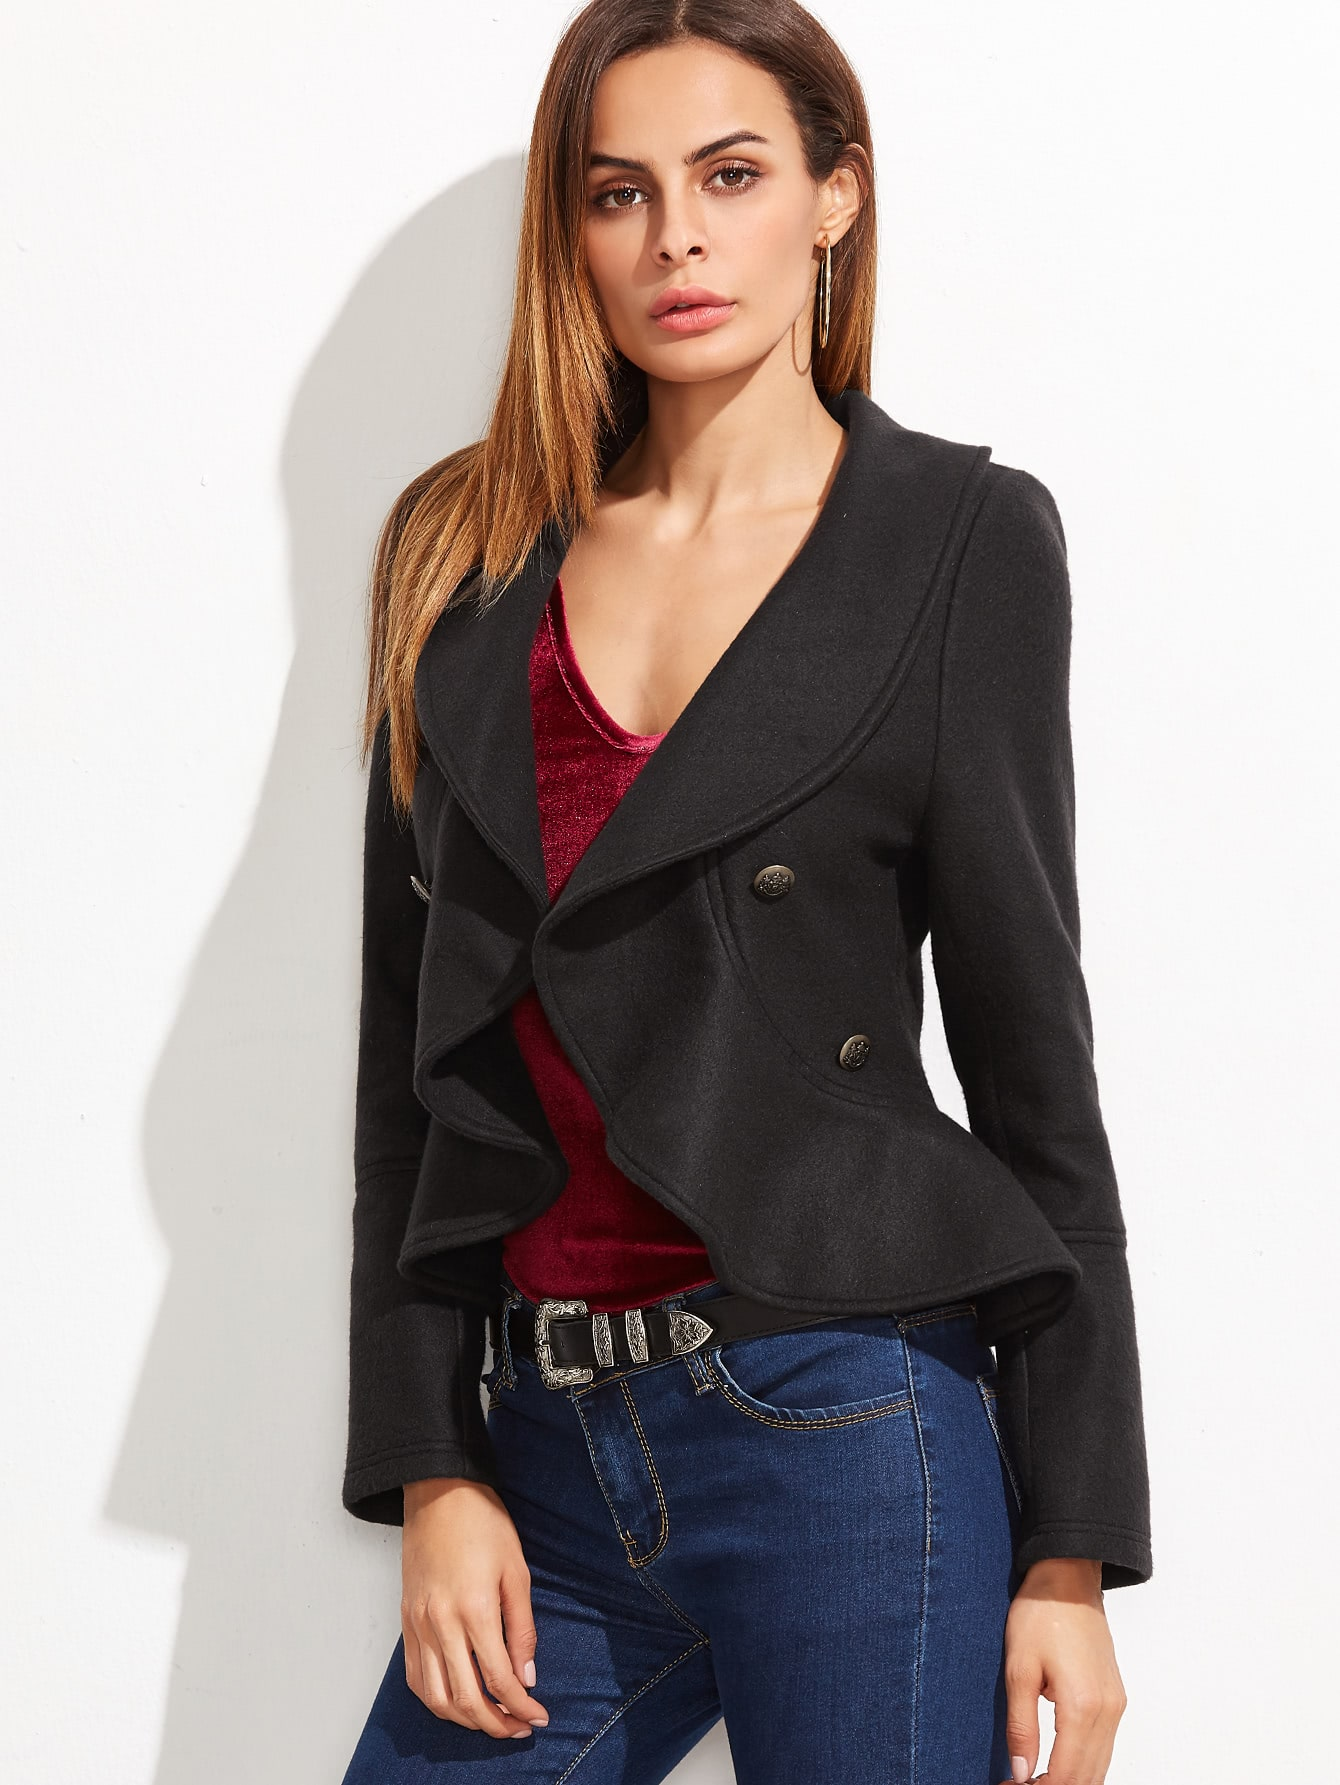 Black Shawl Collar Double Breasted Ruffle BlazerBlack Shawl Collar Double Breasted Ruffle Blazer<br><br>color: Black<br>size: L,M,S,XS